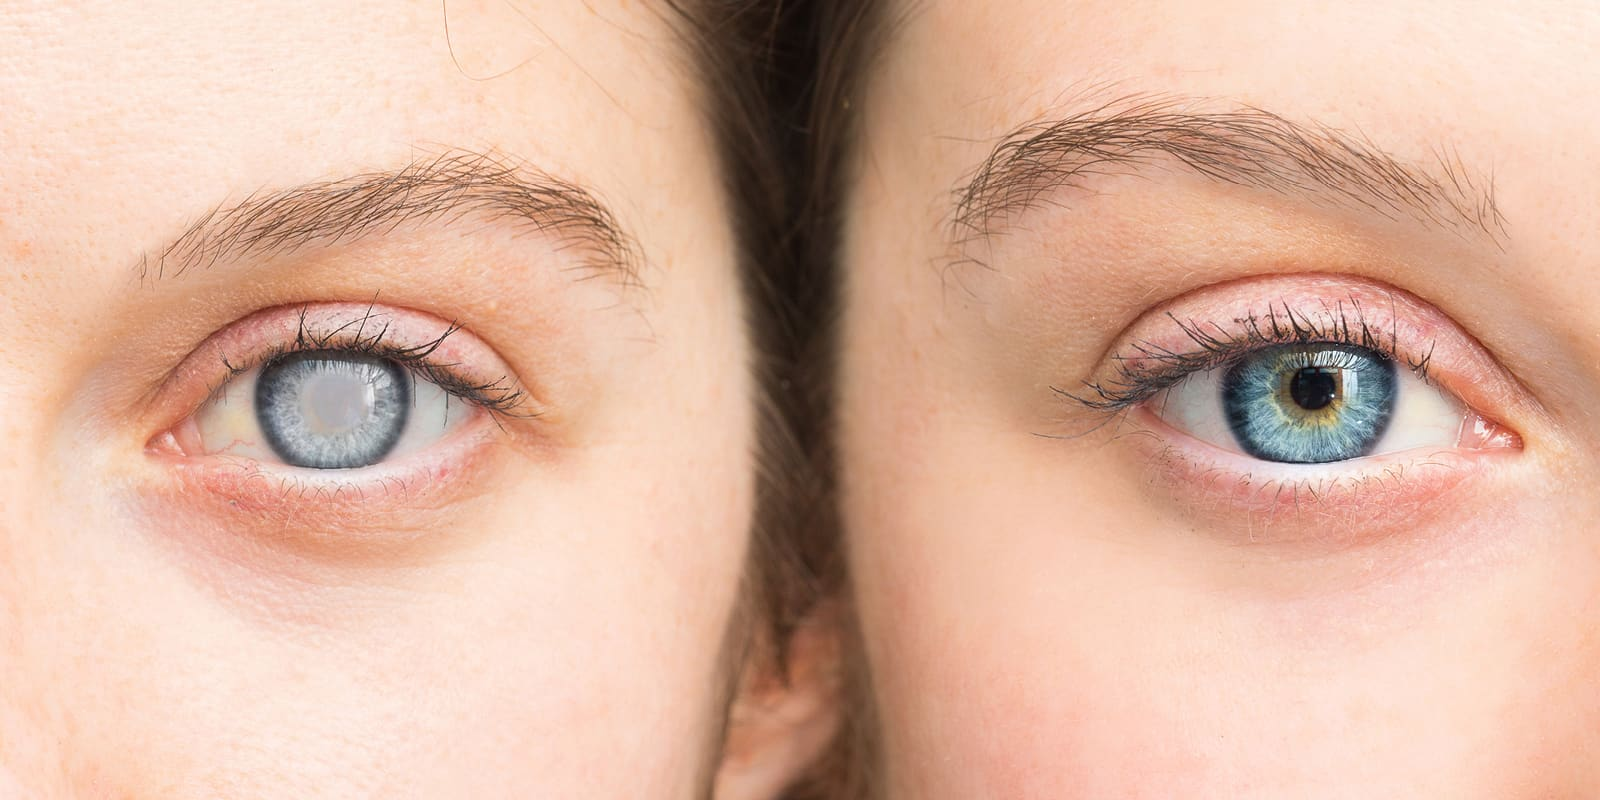 Cataracts – A nuisance that can be corrected